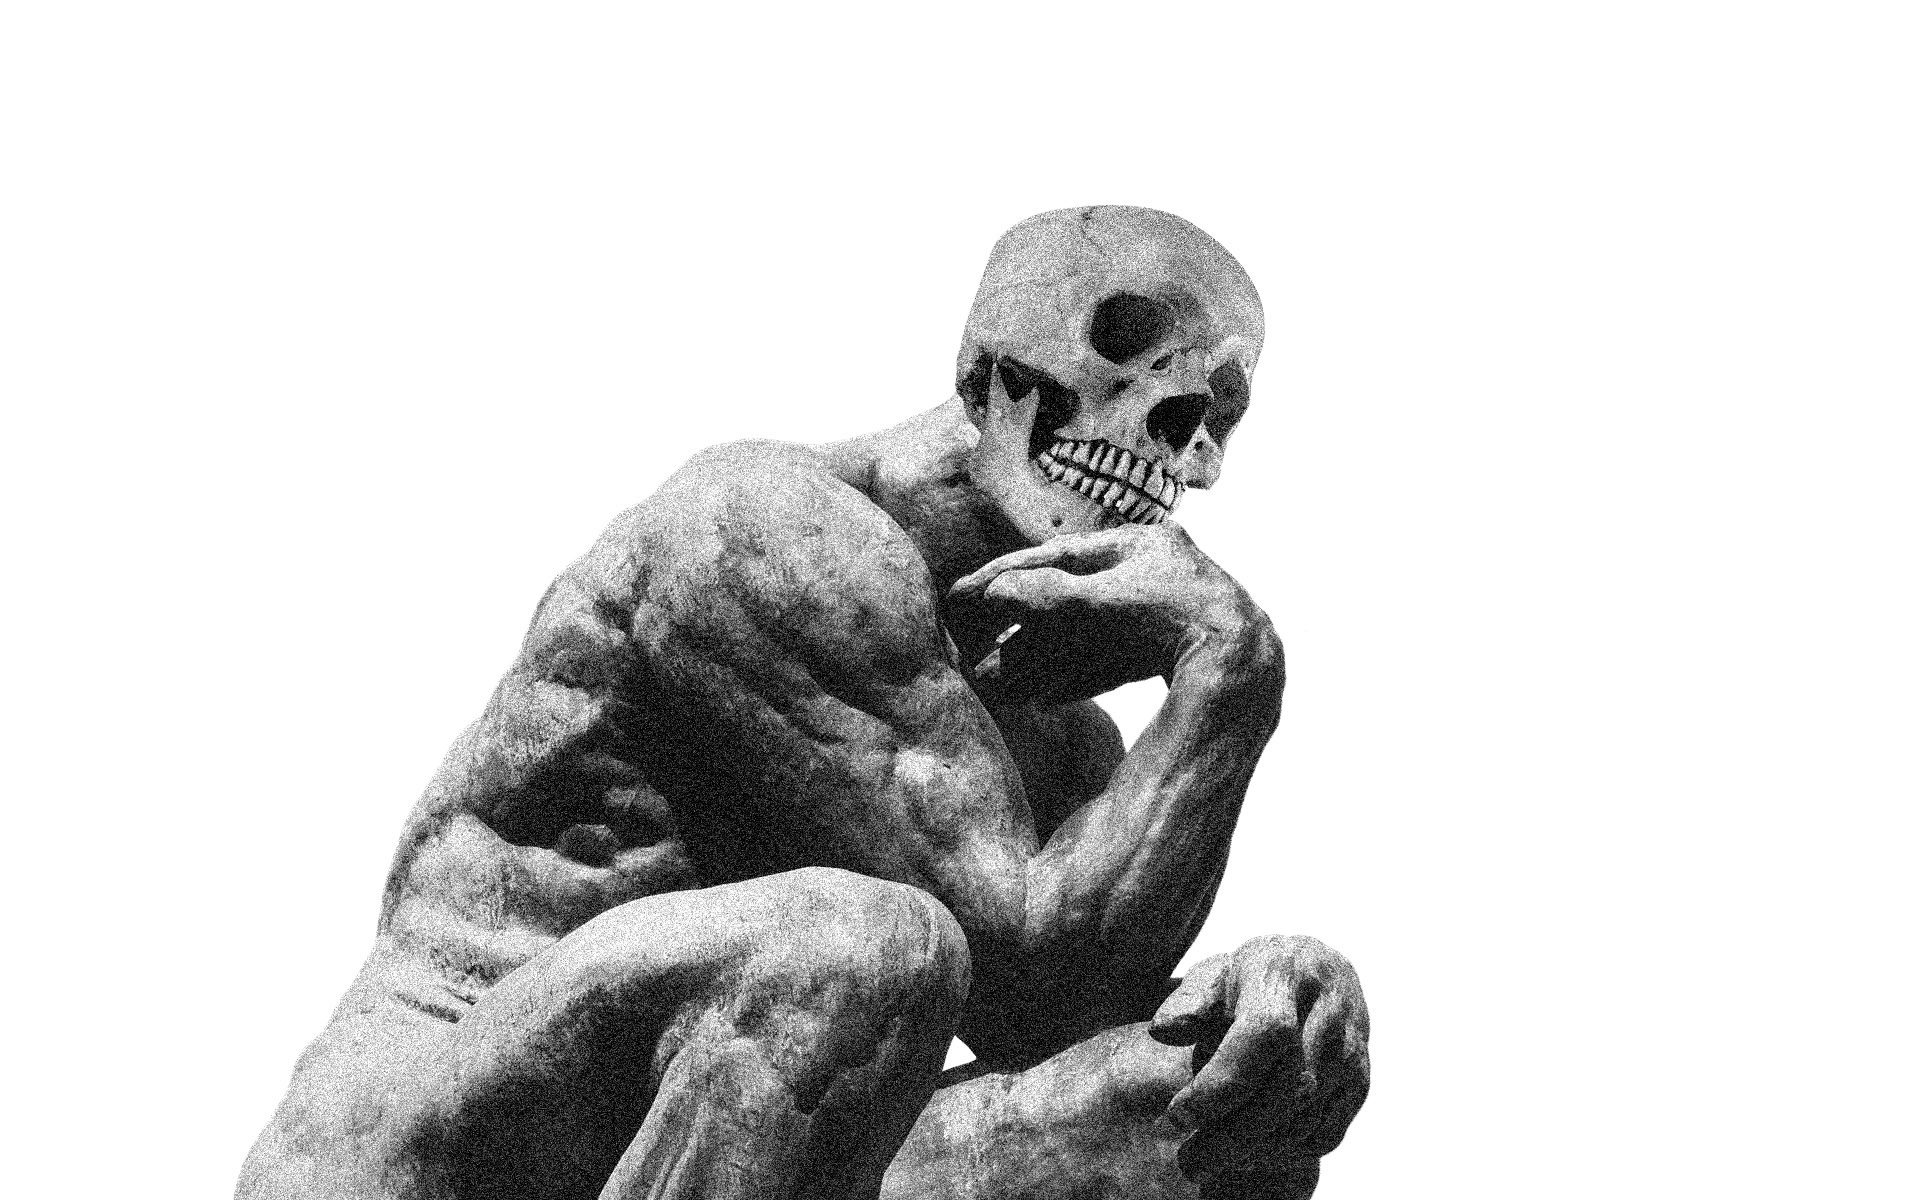 The Famous statue 'Le Penseur' depicted with a skull